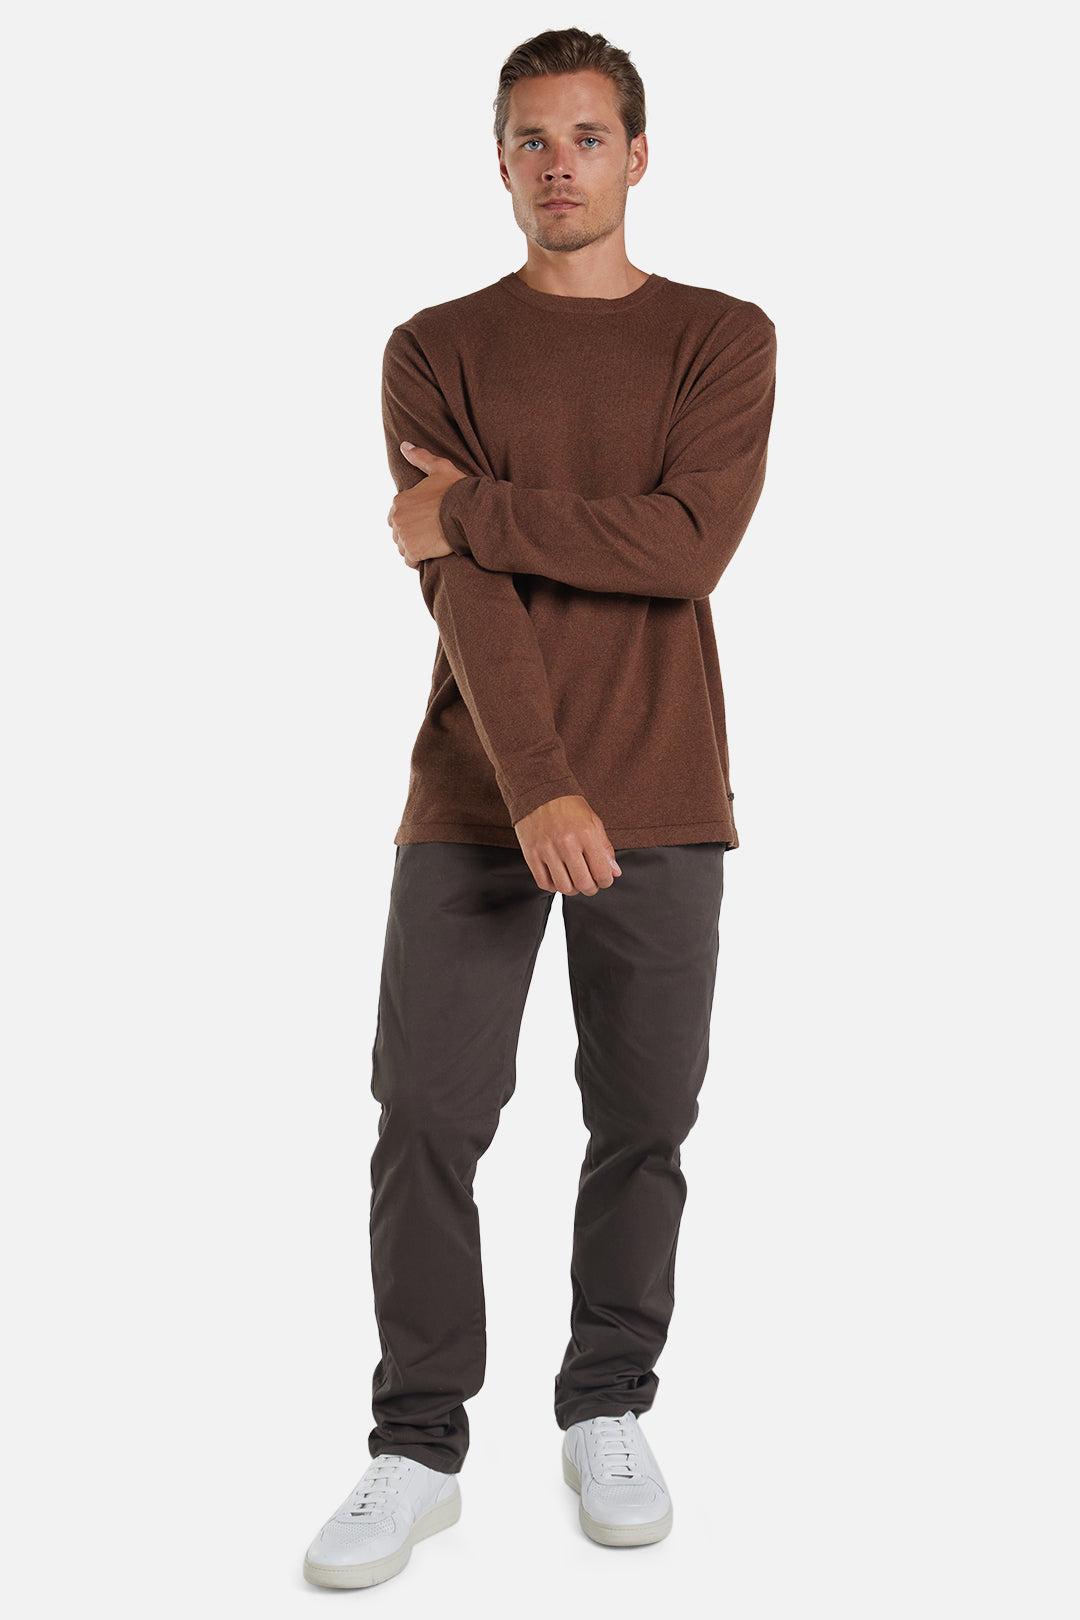 The Cashmere Blend Knit - Ginger